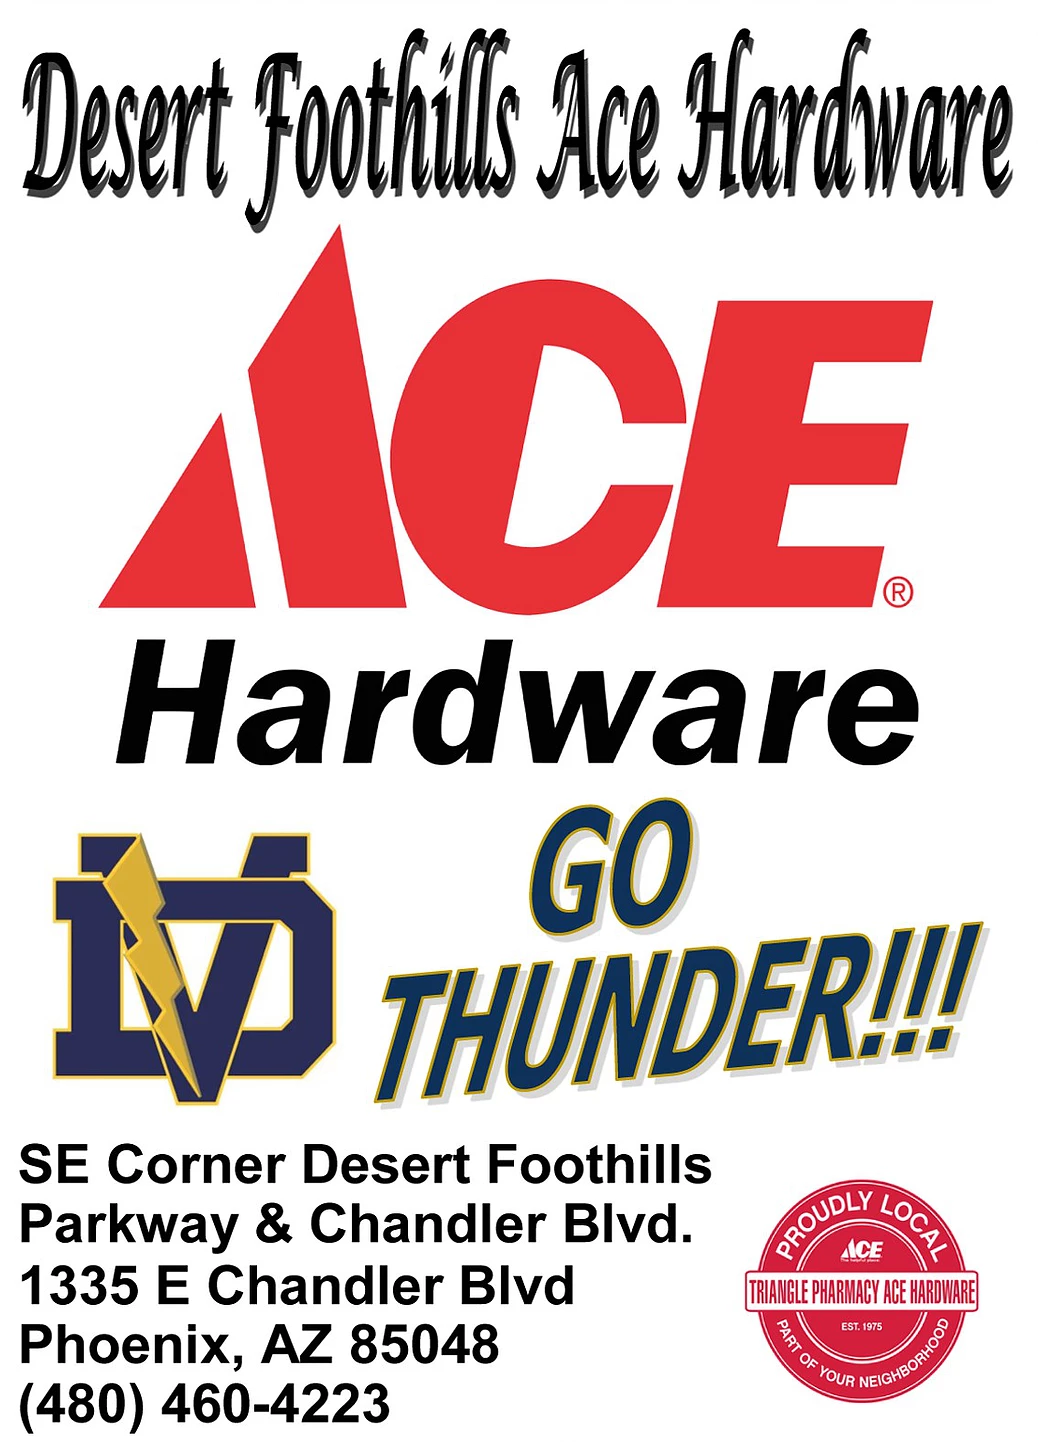 Desert Foothills Ace Hardware